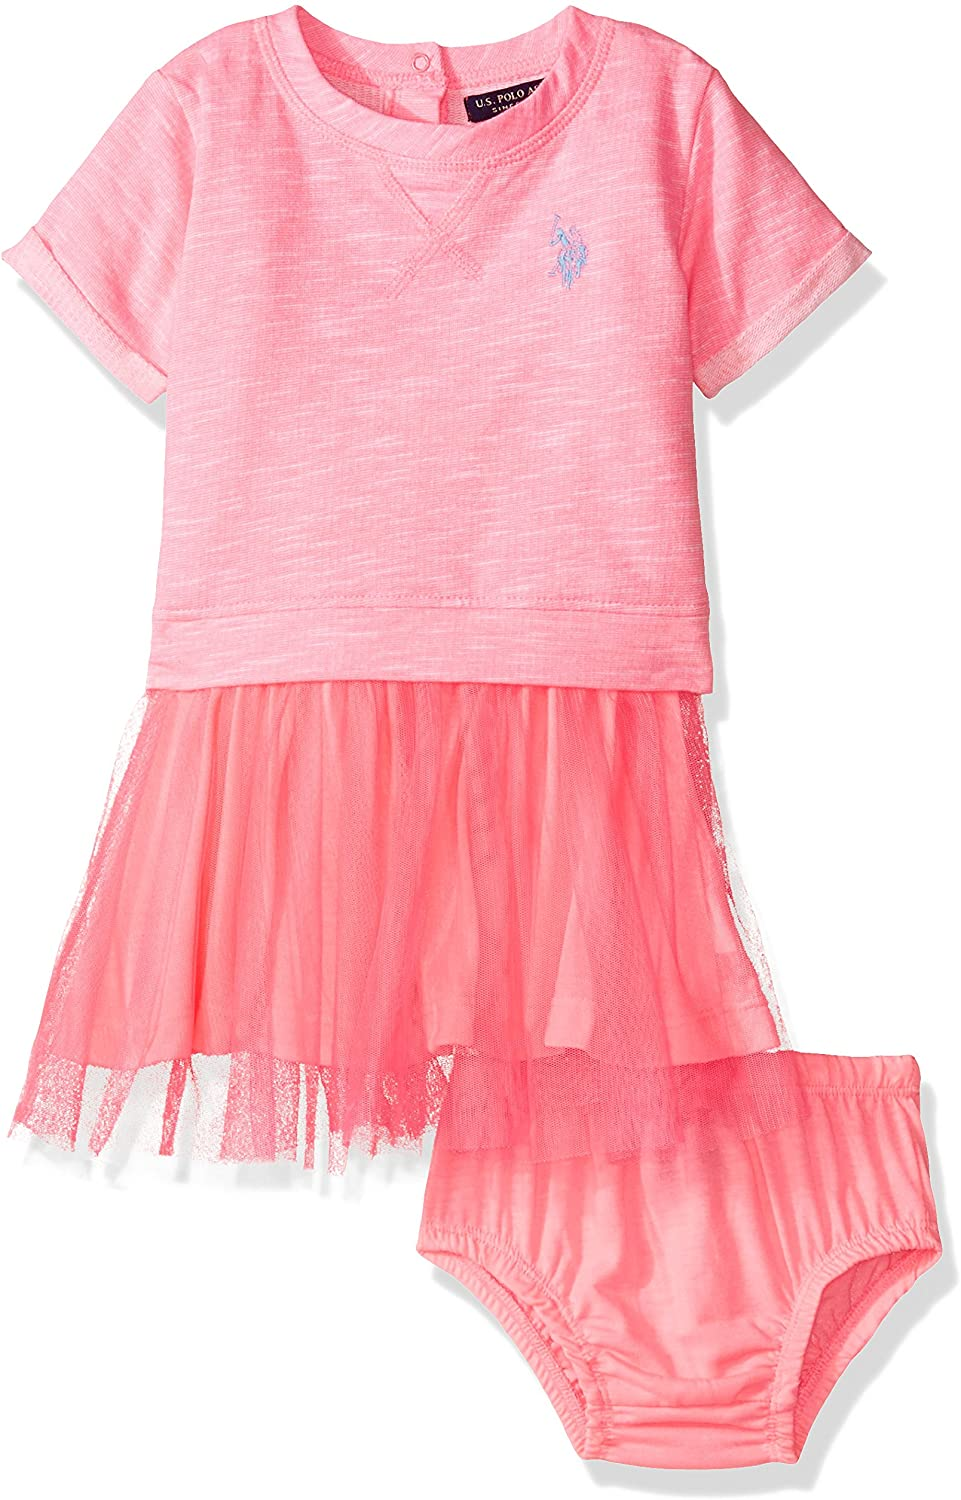 U.S. Polo Assn. Baby Girls' French Terry and Tulle Dress